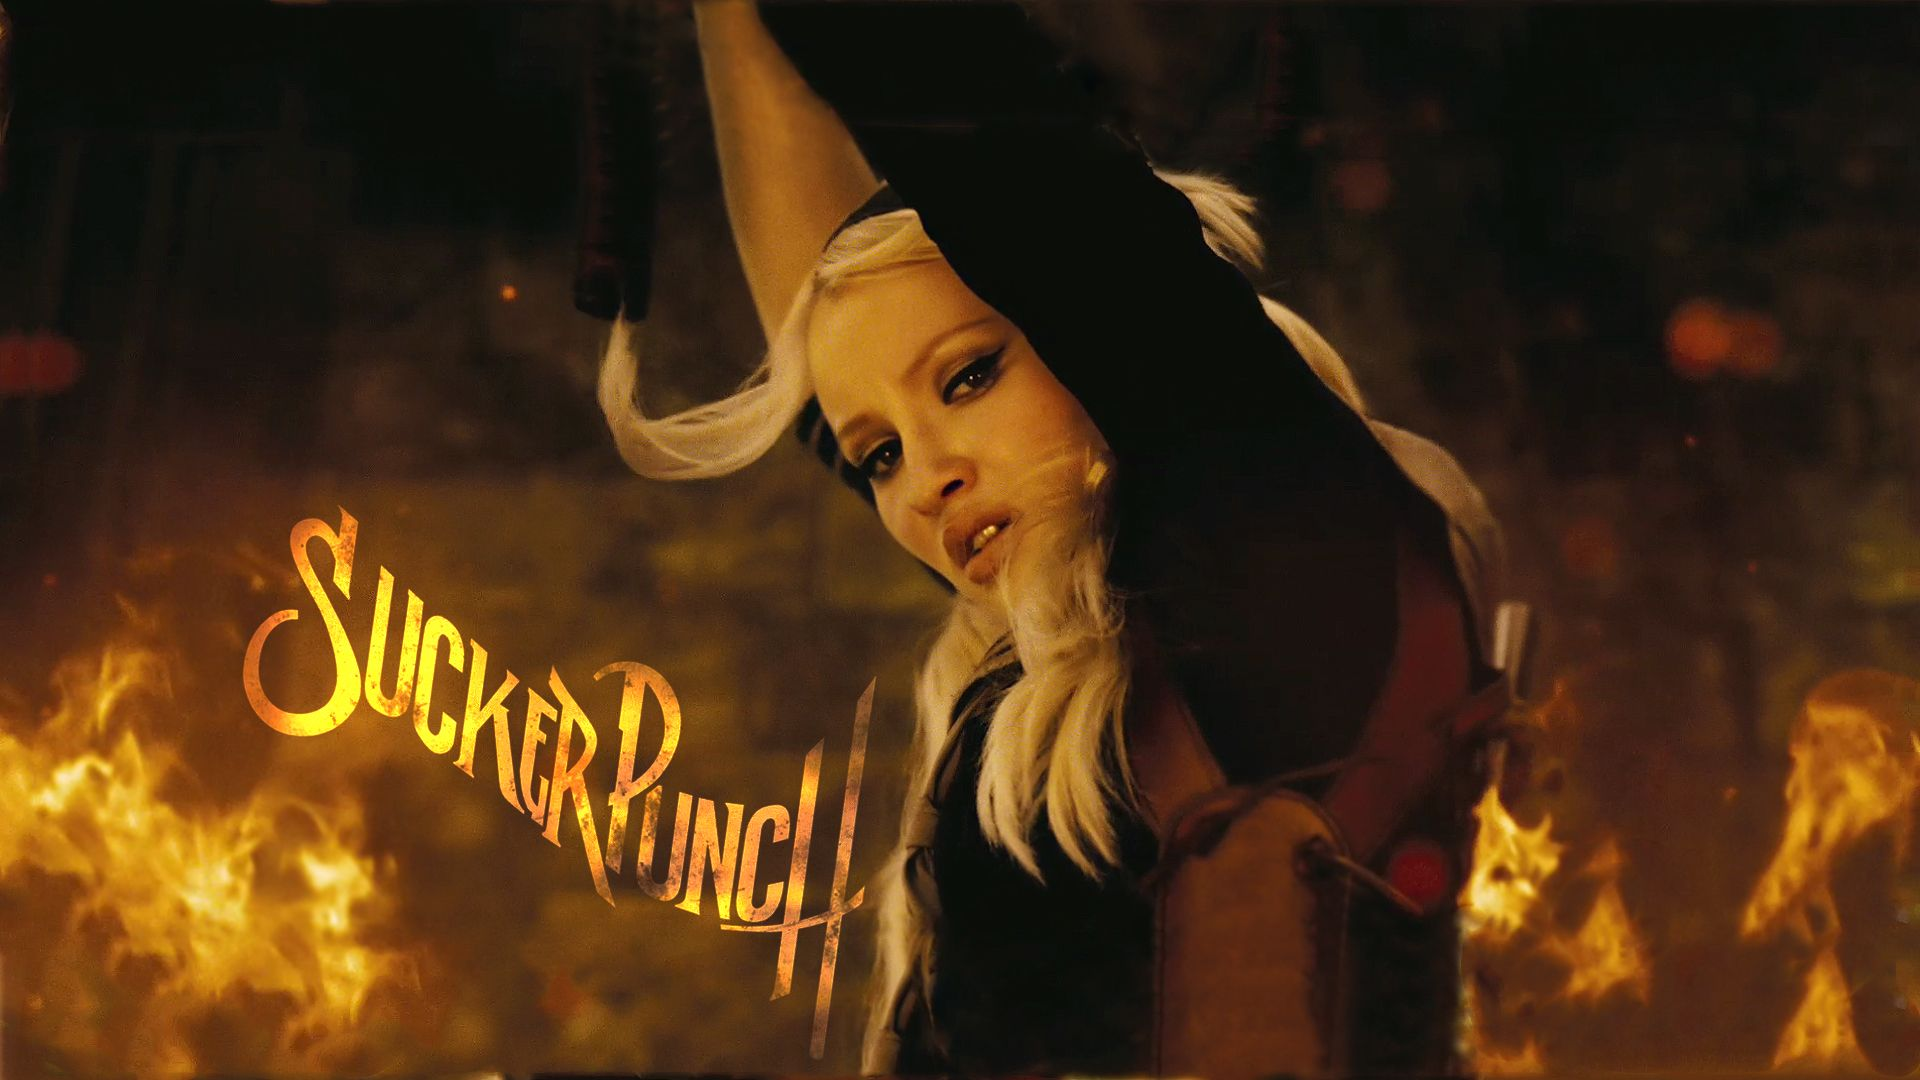 emily browning, wallpaper, sucker, punch, images, fantasy